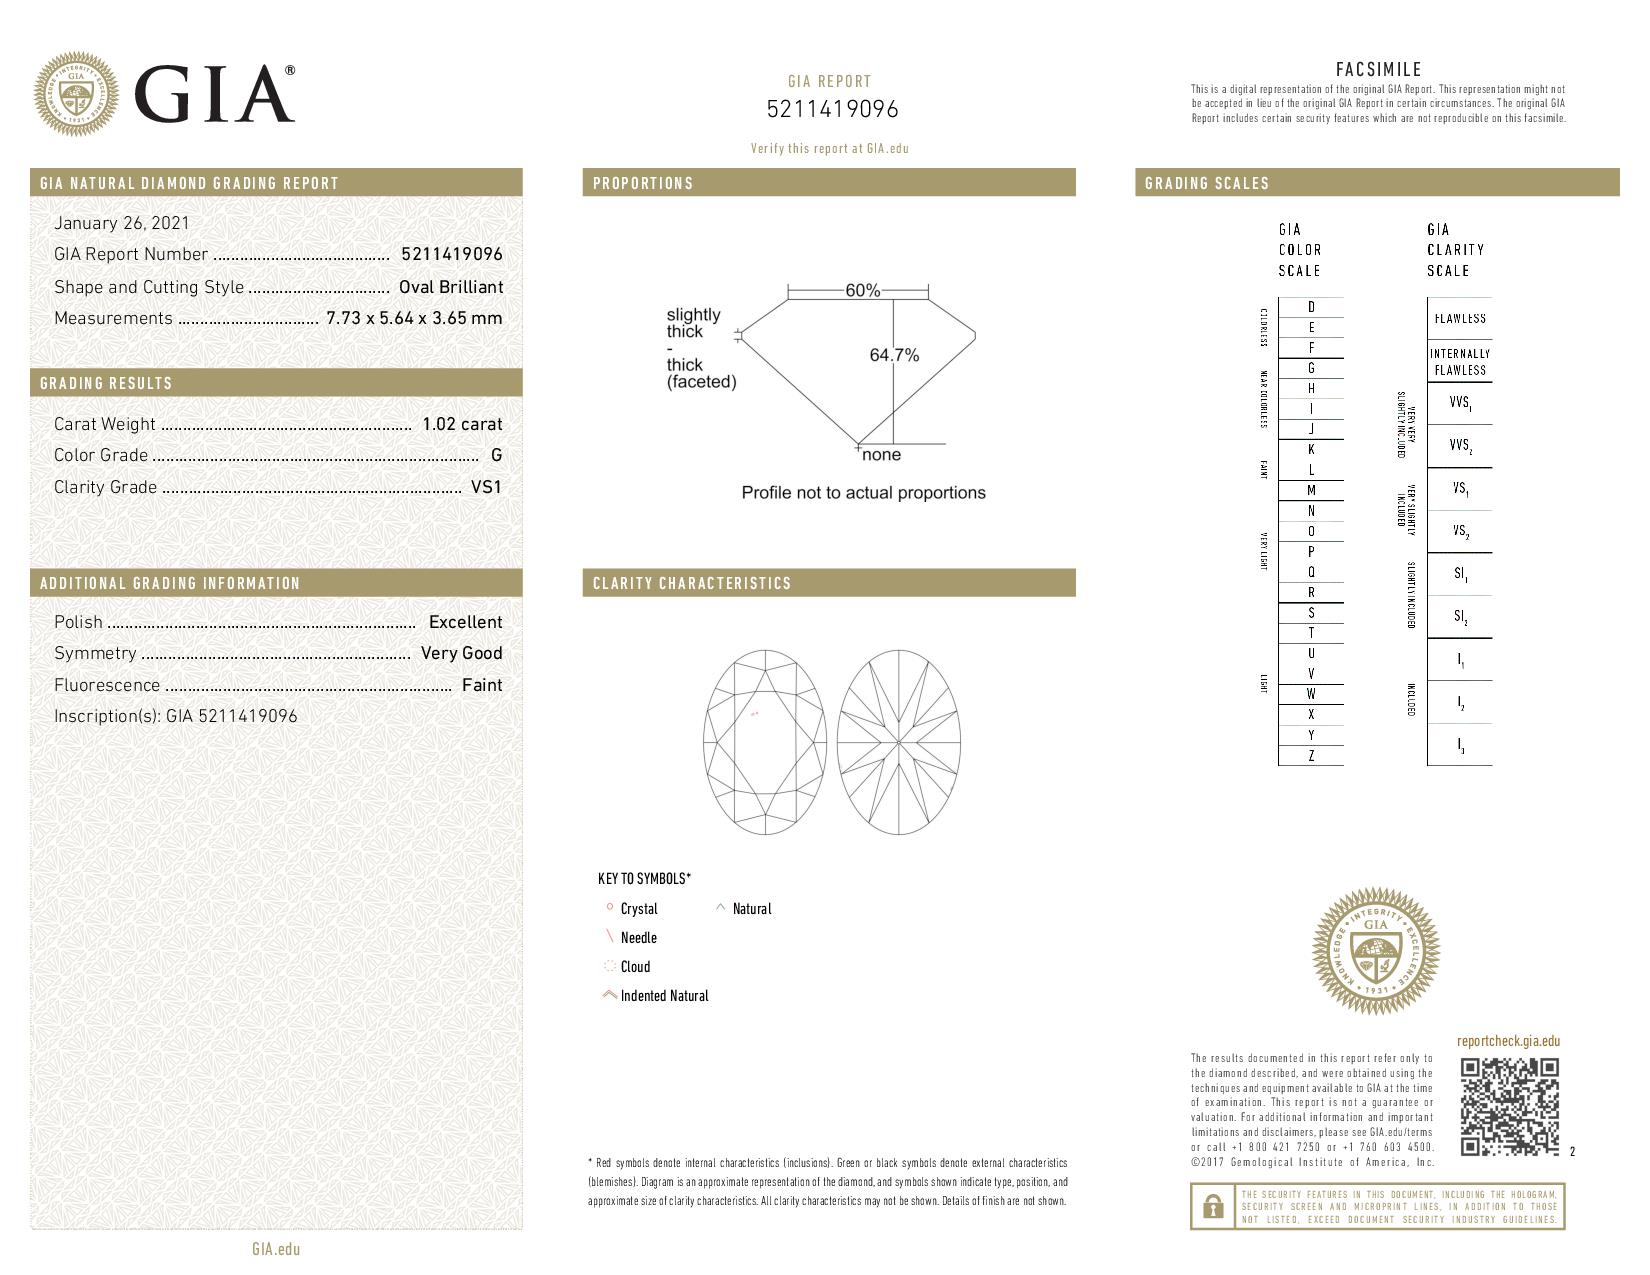 This is a 1.02 carat oval shape, G color, VS1 clarity natural diamond accompanied by a GIA grading report.